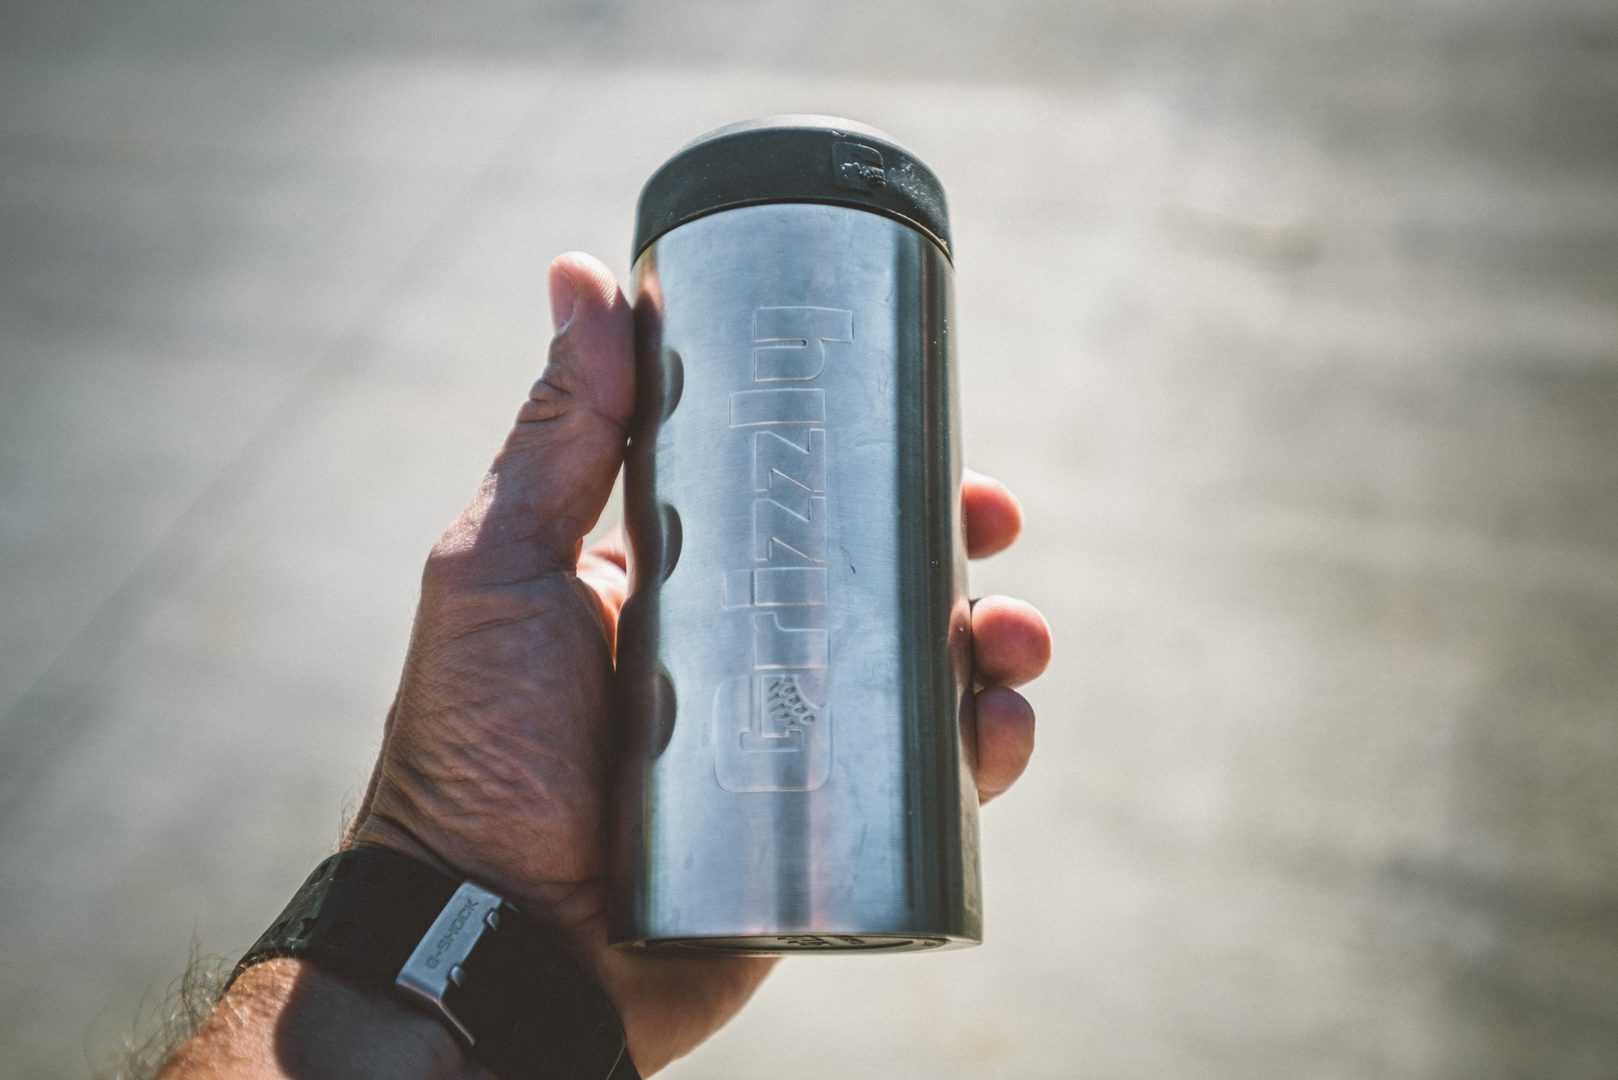 grizzly coolers drinkware, slim can koozie in palm of a hand